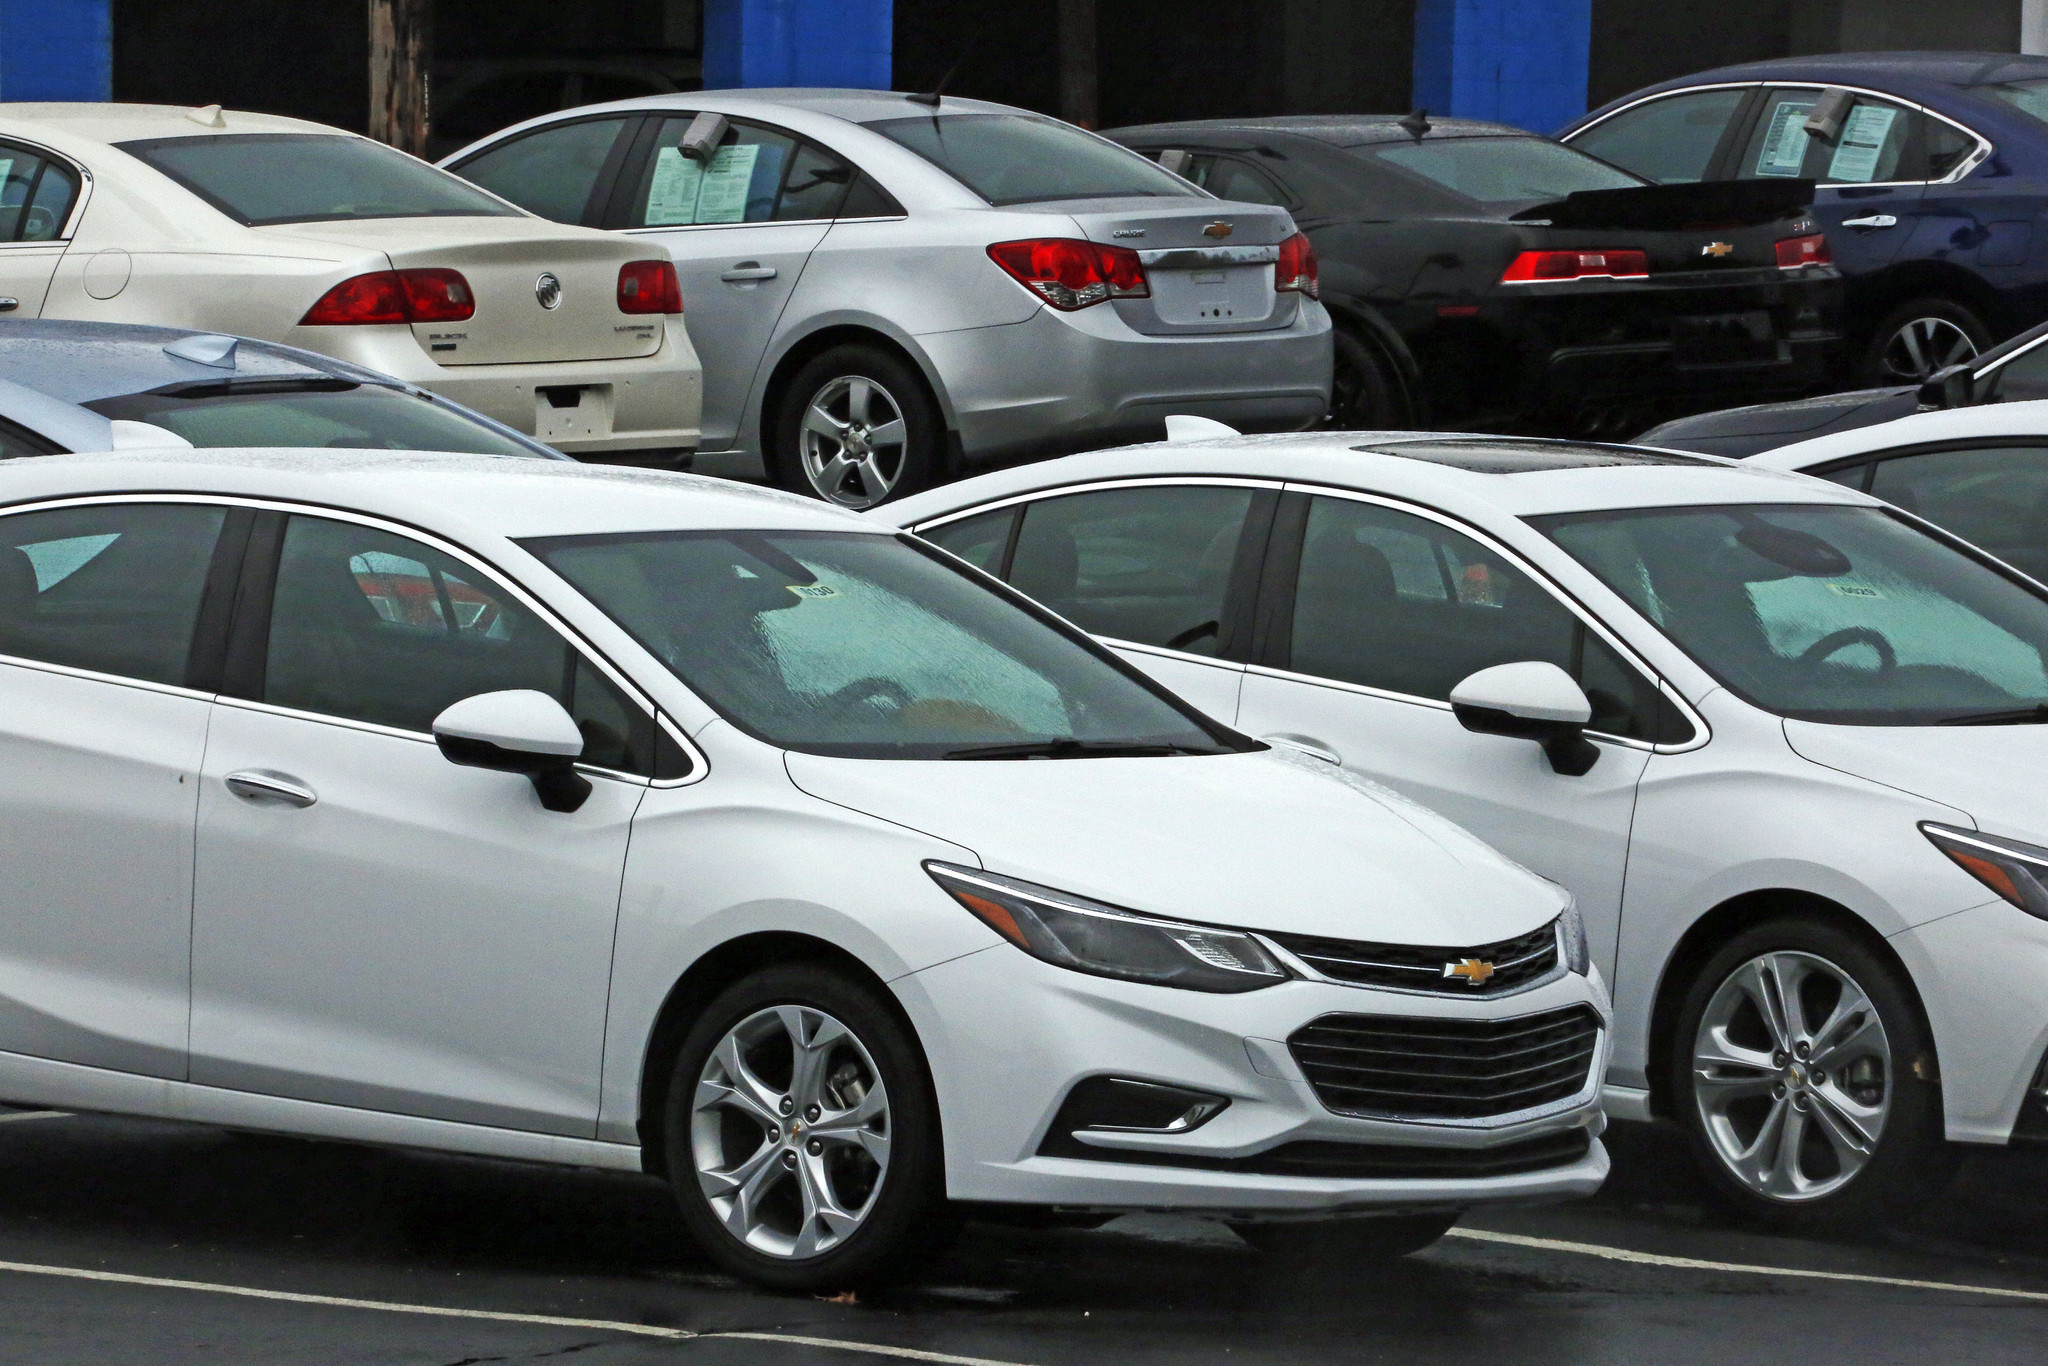 May Car Sales Are Flat The Sedan Heads Toward Irrelevance La Times